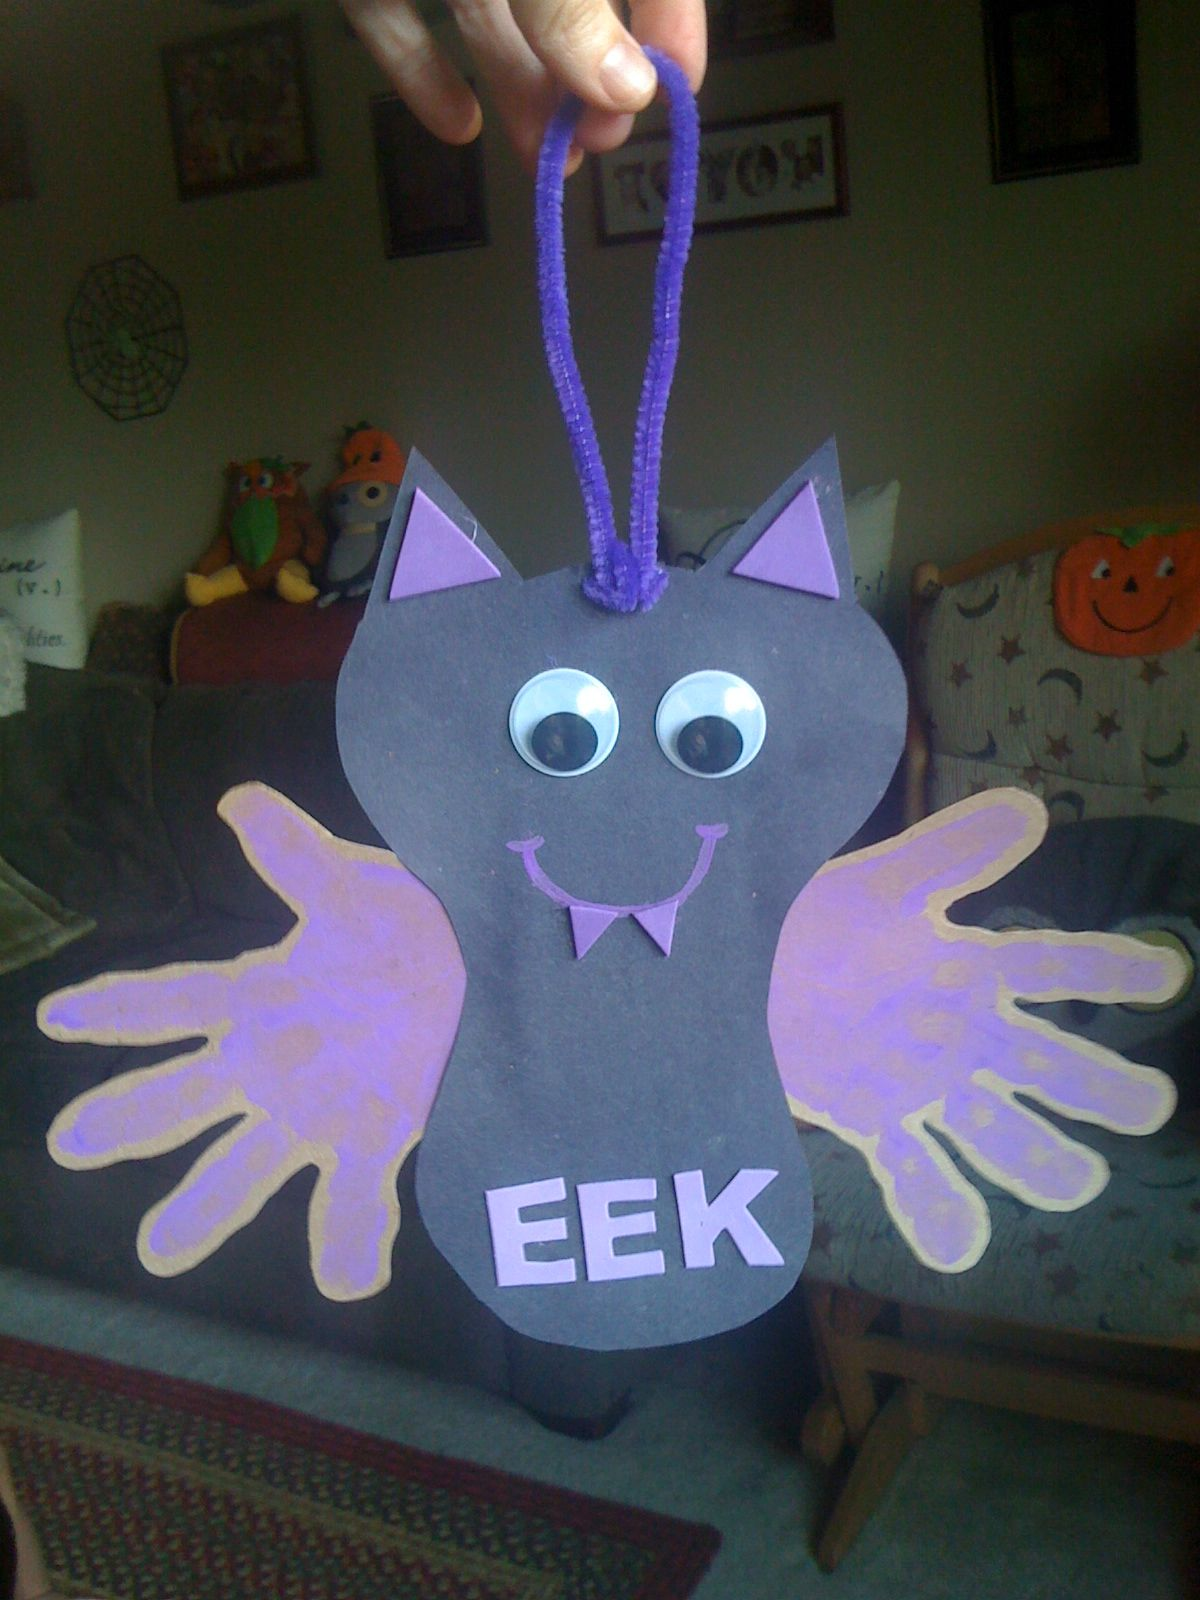 Construction Paper Bat With Purple Handprints On Cardboard